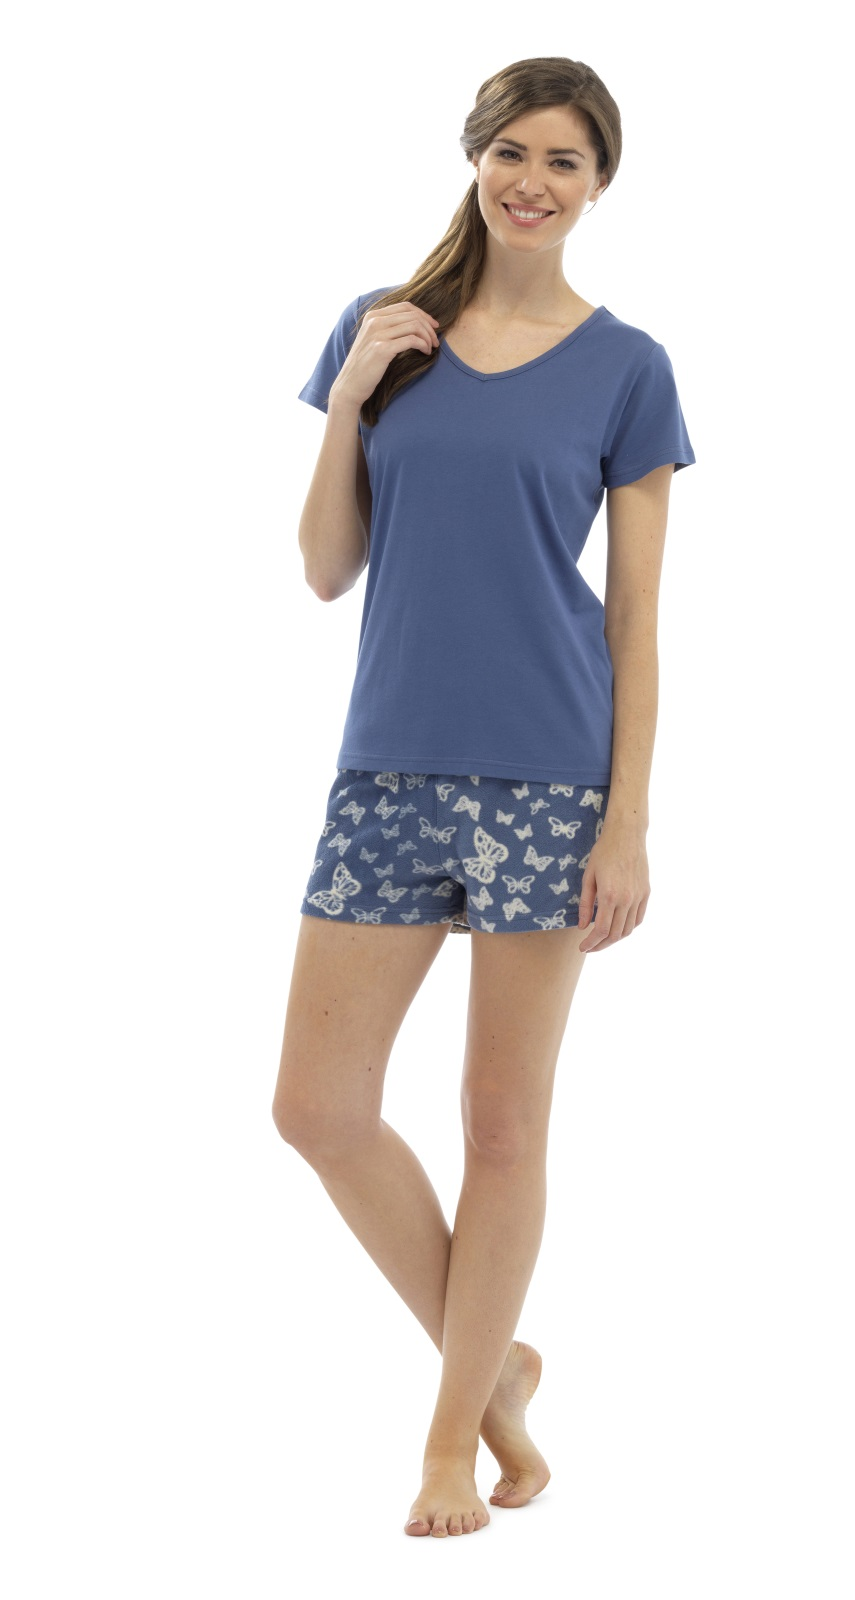 Matalan range of mix and match nightwear. Next Working Day Delivery* Order before 4pm & receive your order next day.